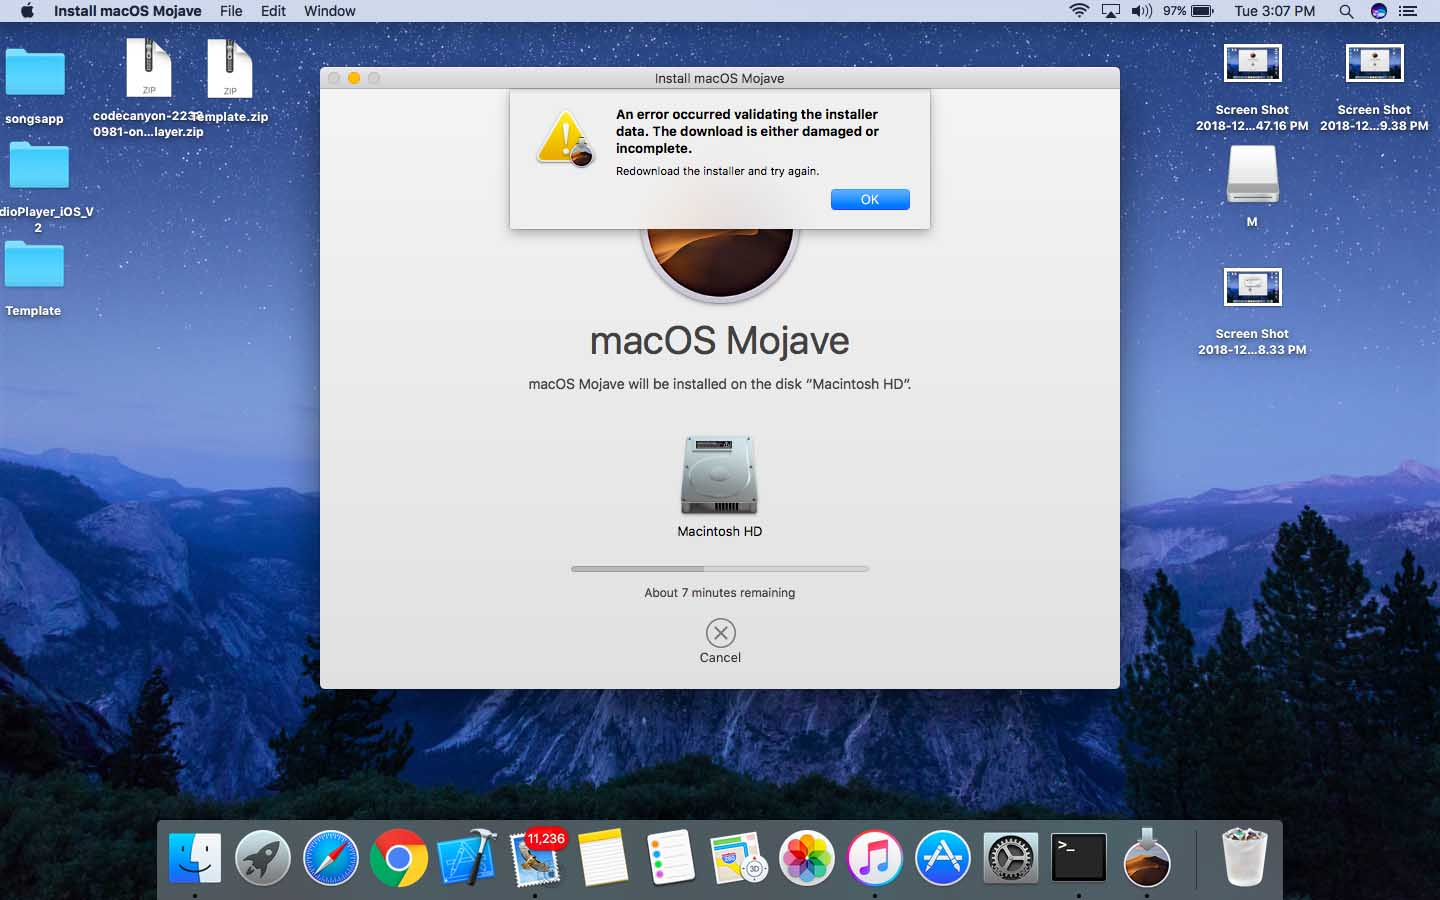 An Error Occurred Validating the installer data - macOS Majove